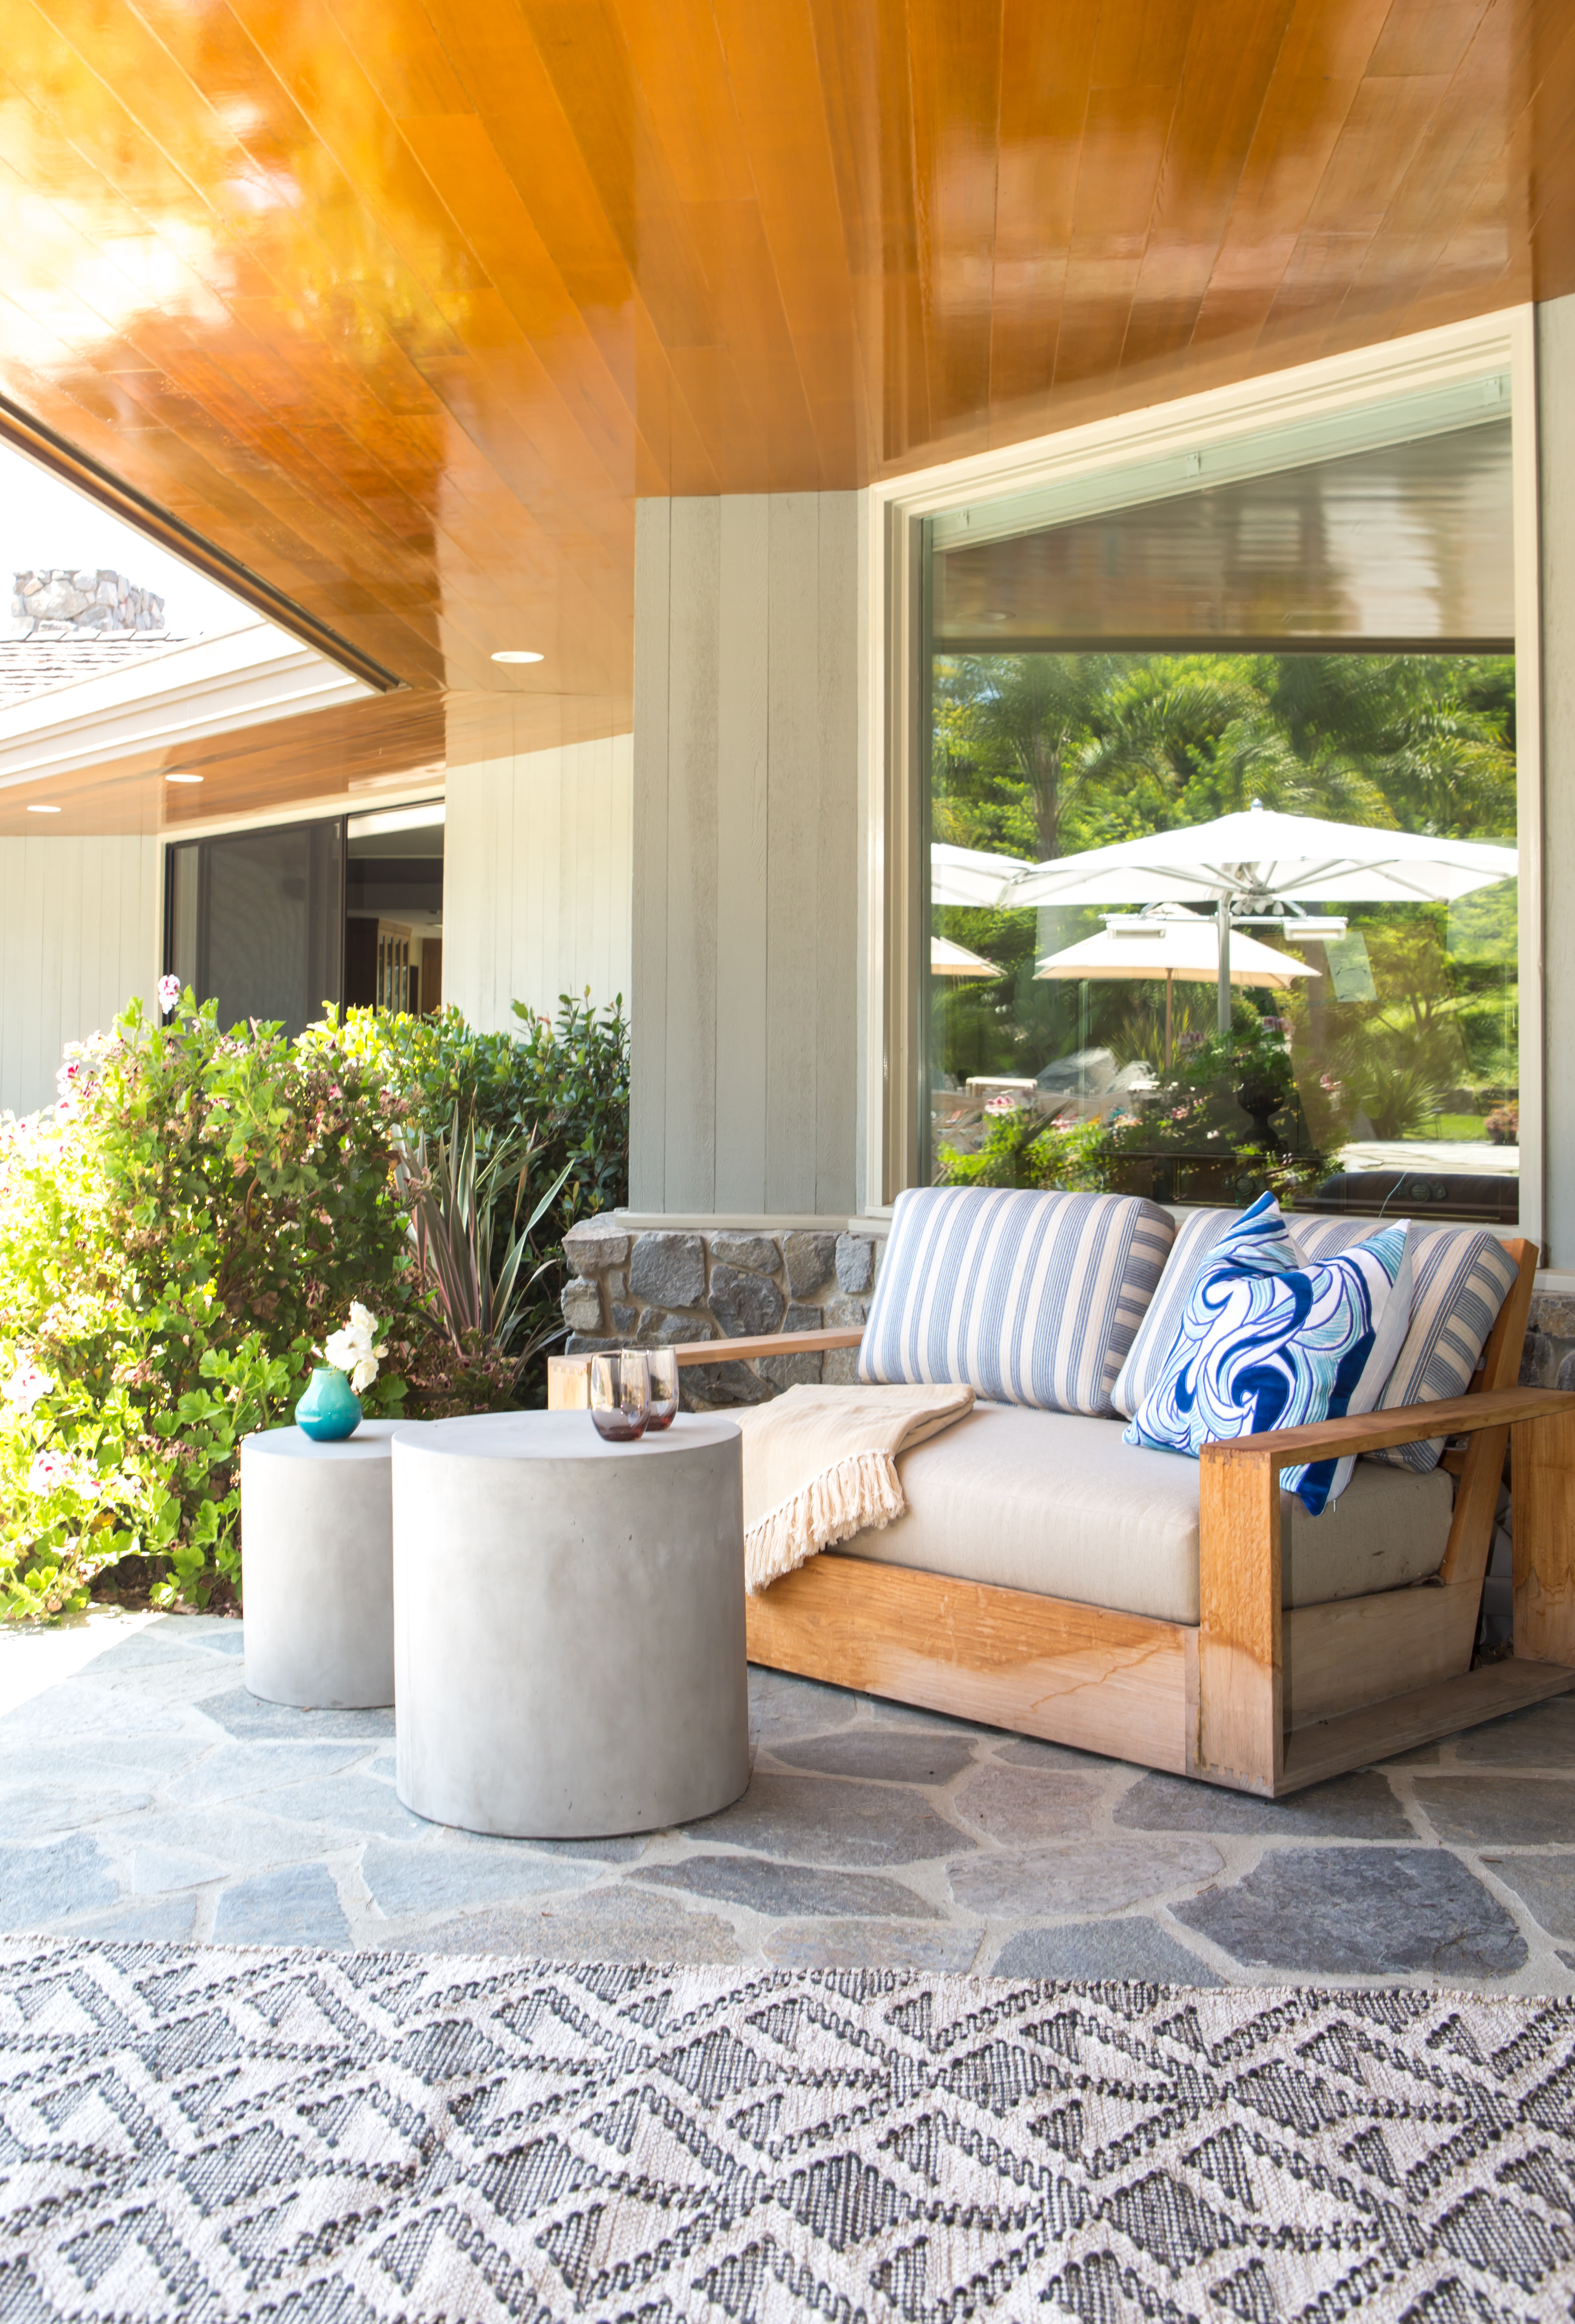 We work on some incredible indoor-outdoor living spaces and in order to seamlessly transition from indoor to out, we utilize durable fabrics and materials that could just as easily be included inside!